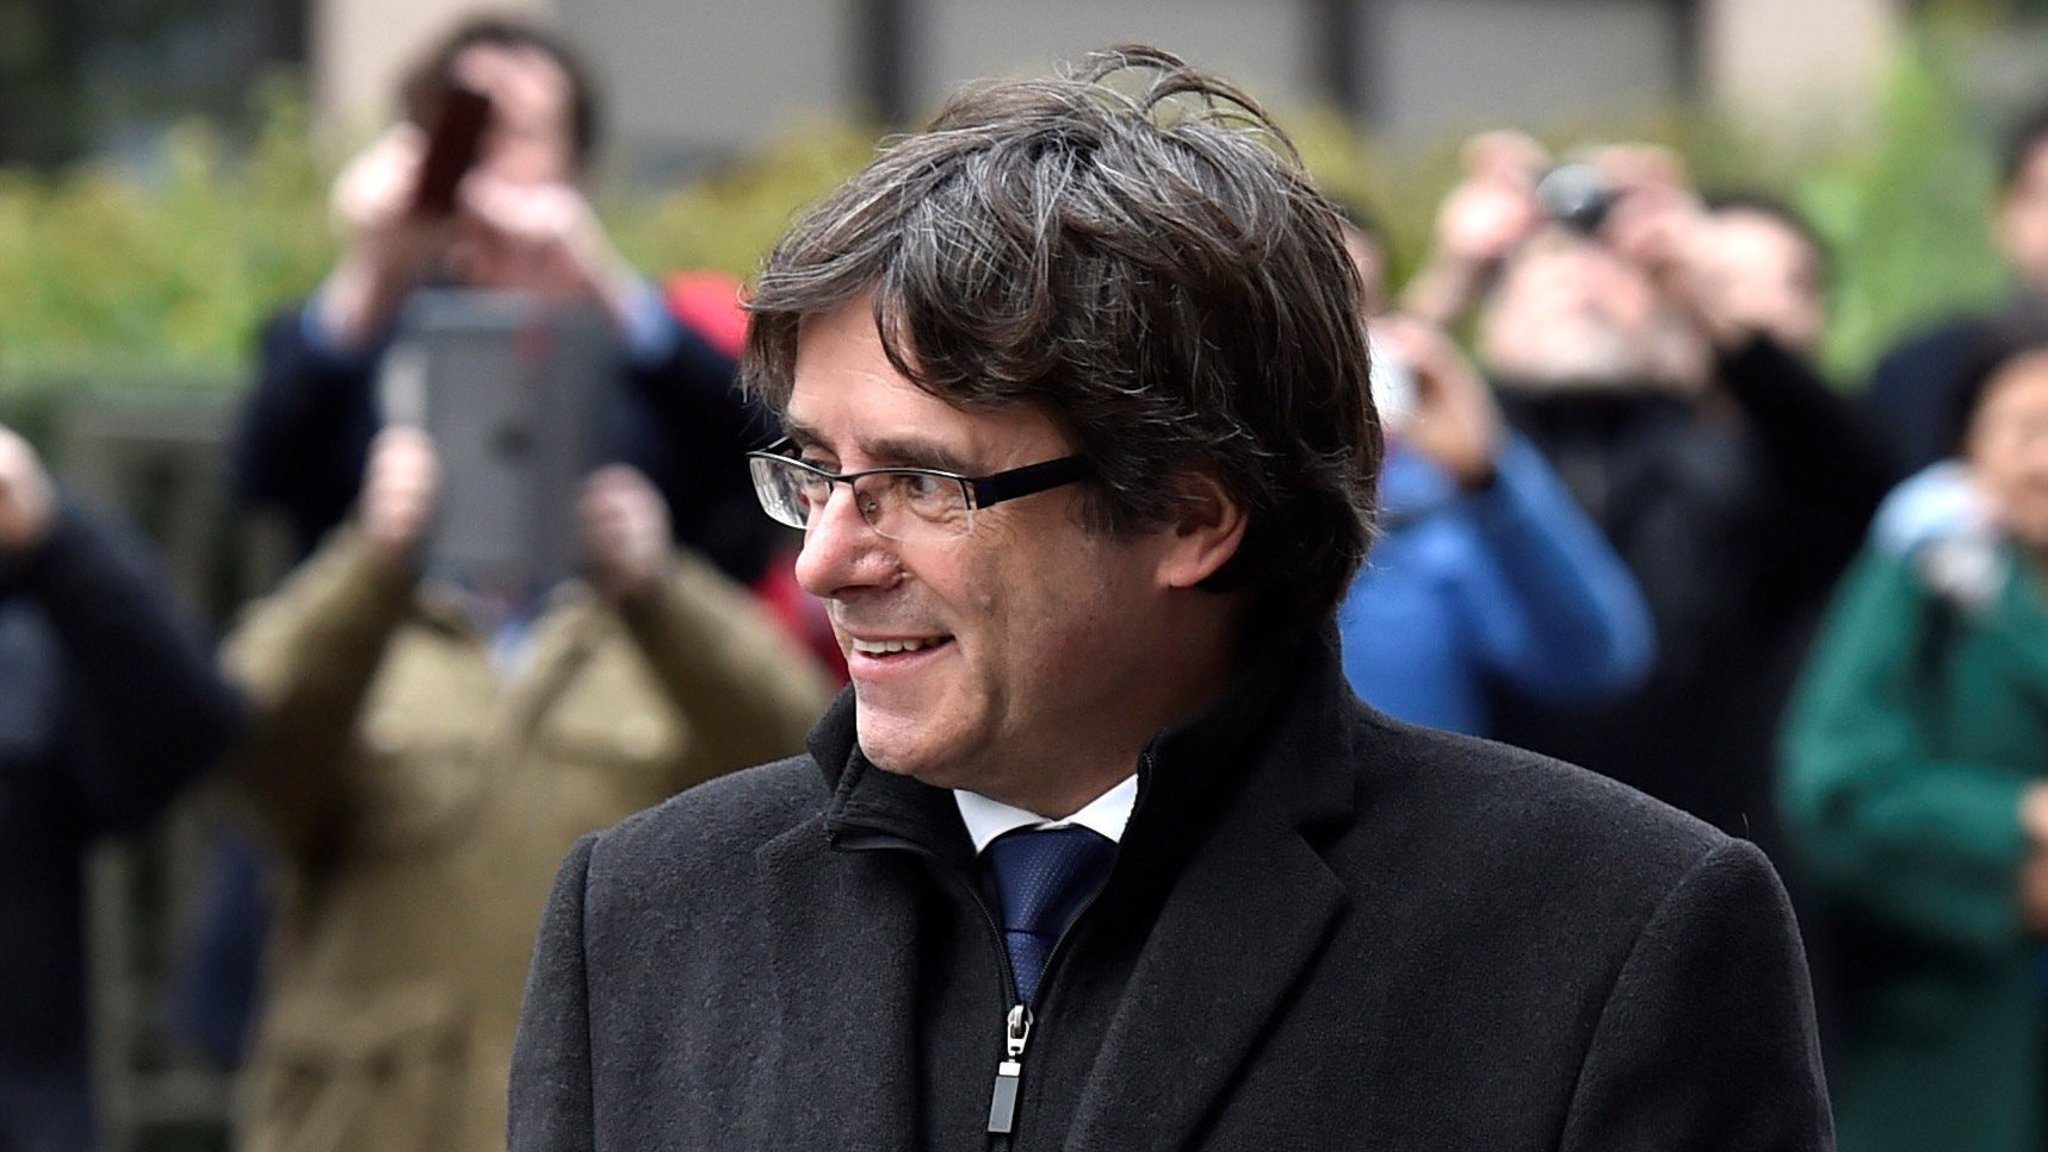 Catalan separatists seek to elect exiled Puigdemont as leader